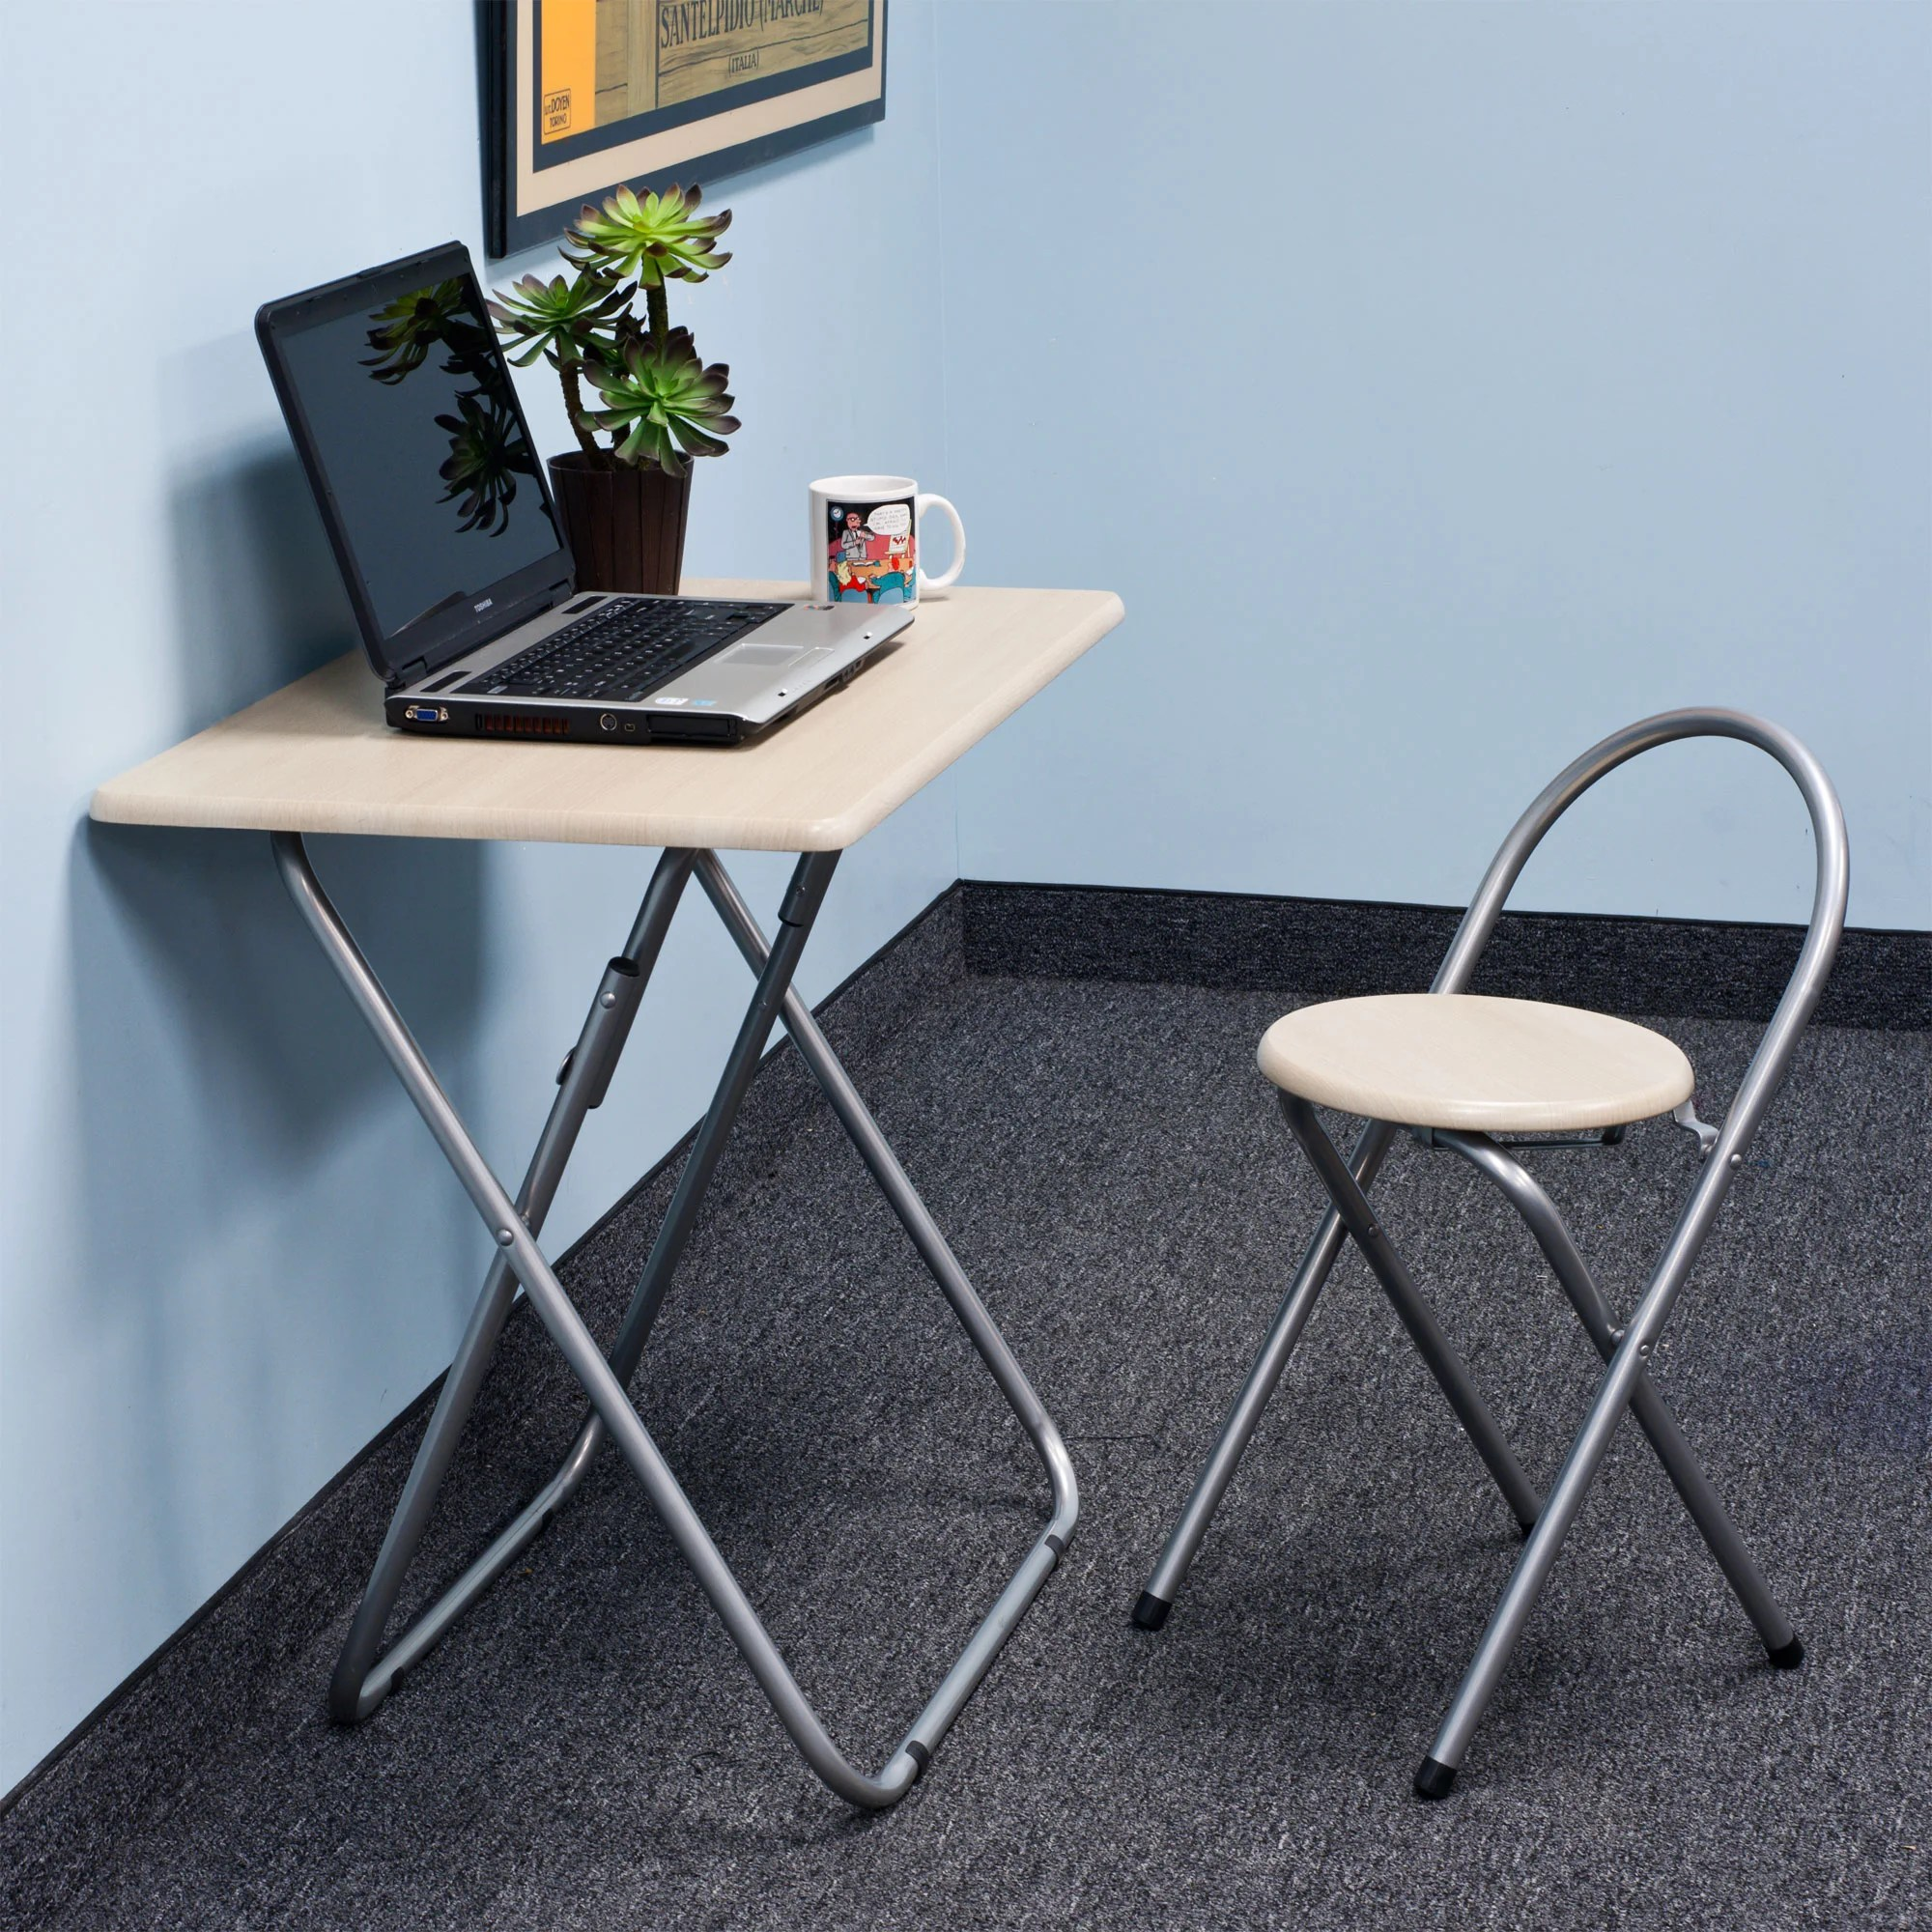 folding chair desk combo outdoor rocking chairs white shop trademark home and free shipping today overstock com 7388520